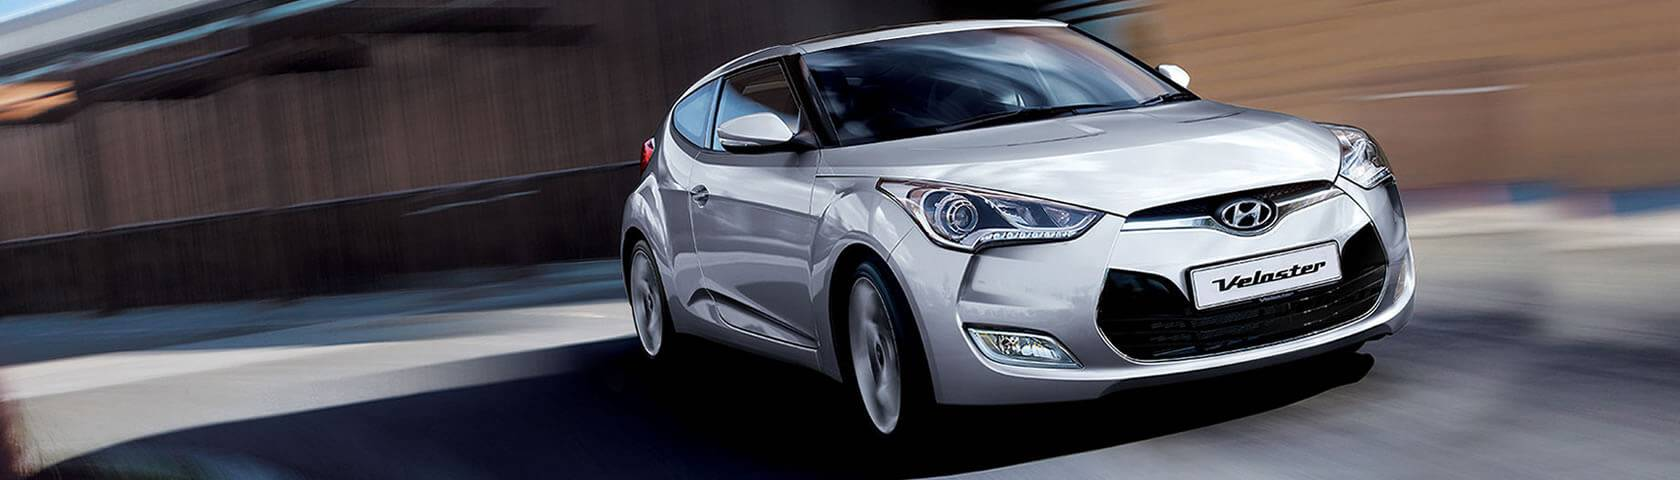 Contact us hyundai dealer belconnen canberra national for Hyundai motor america phone number